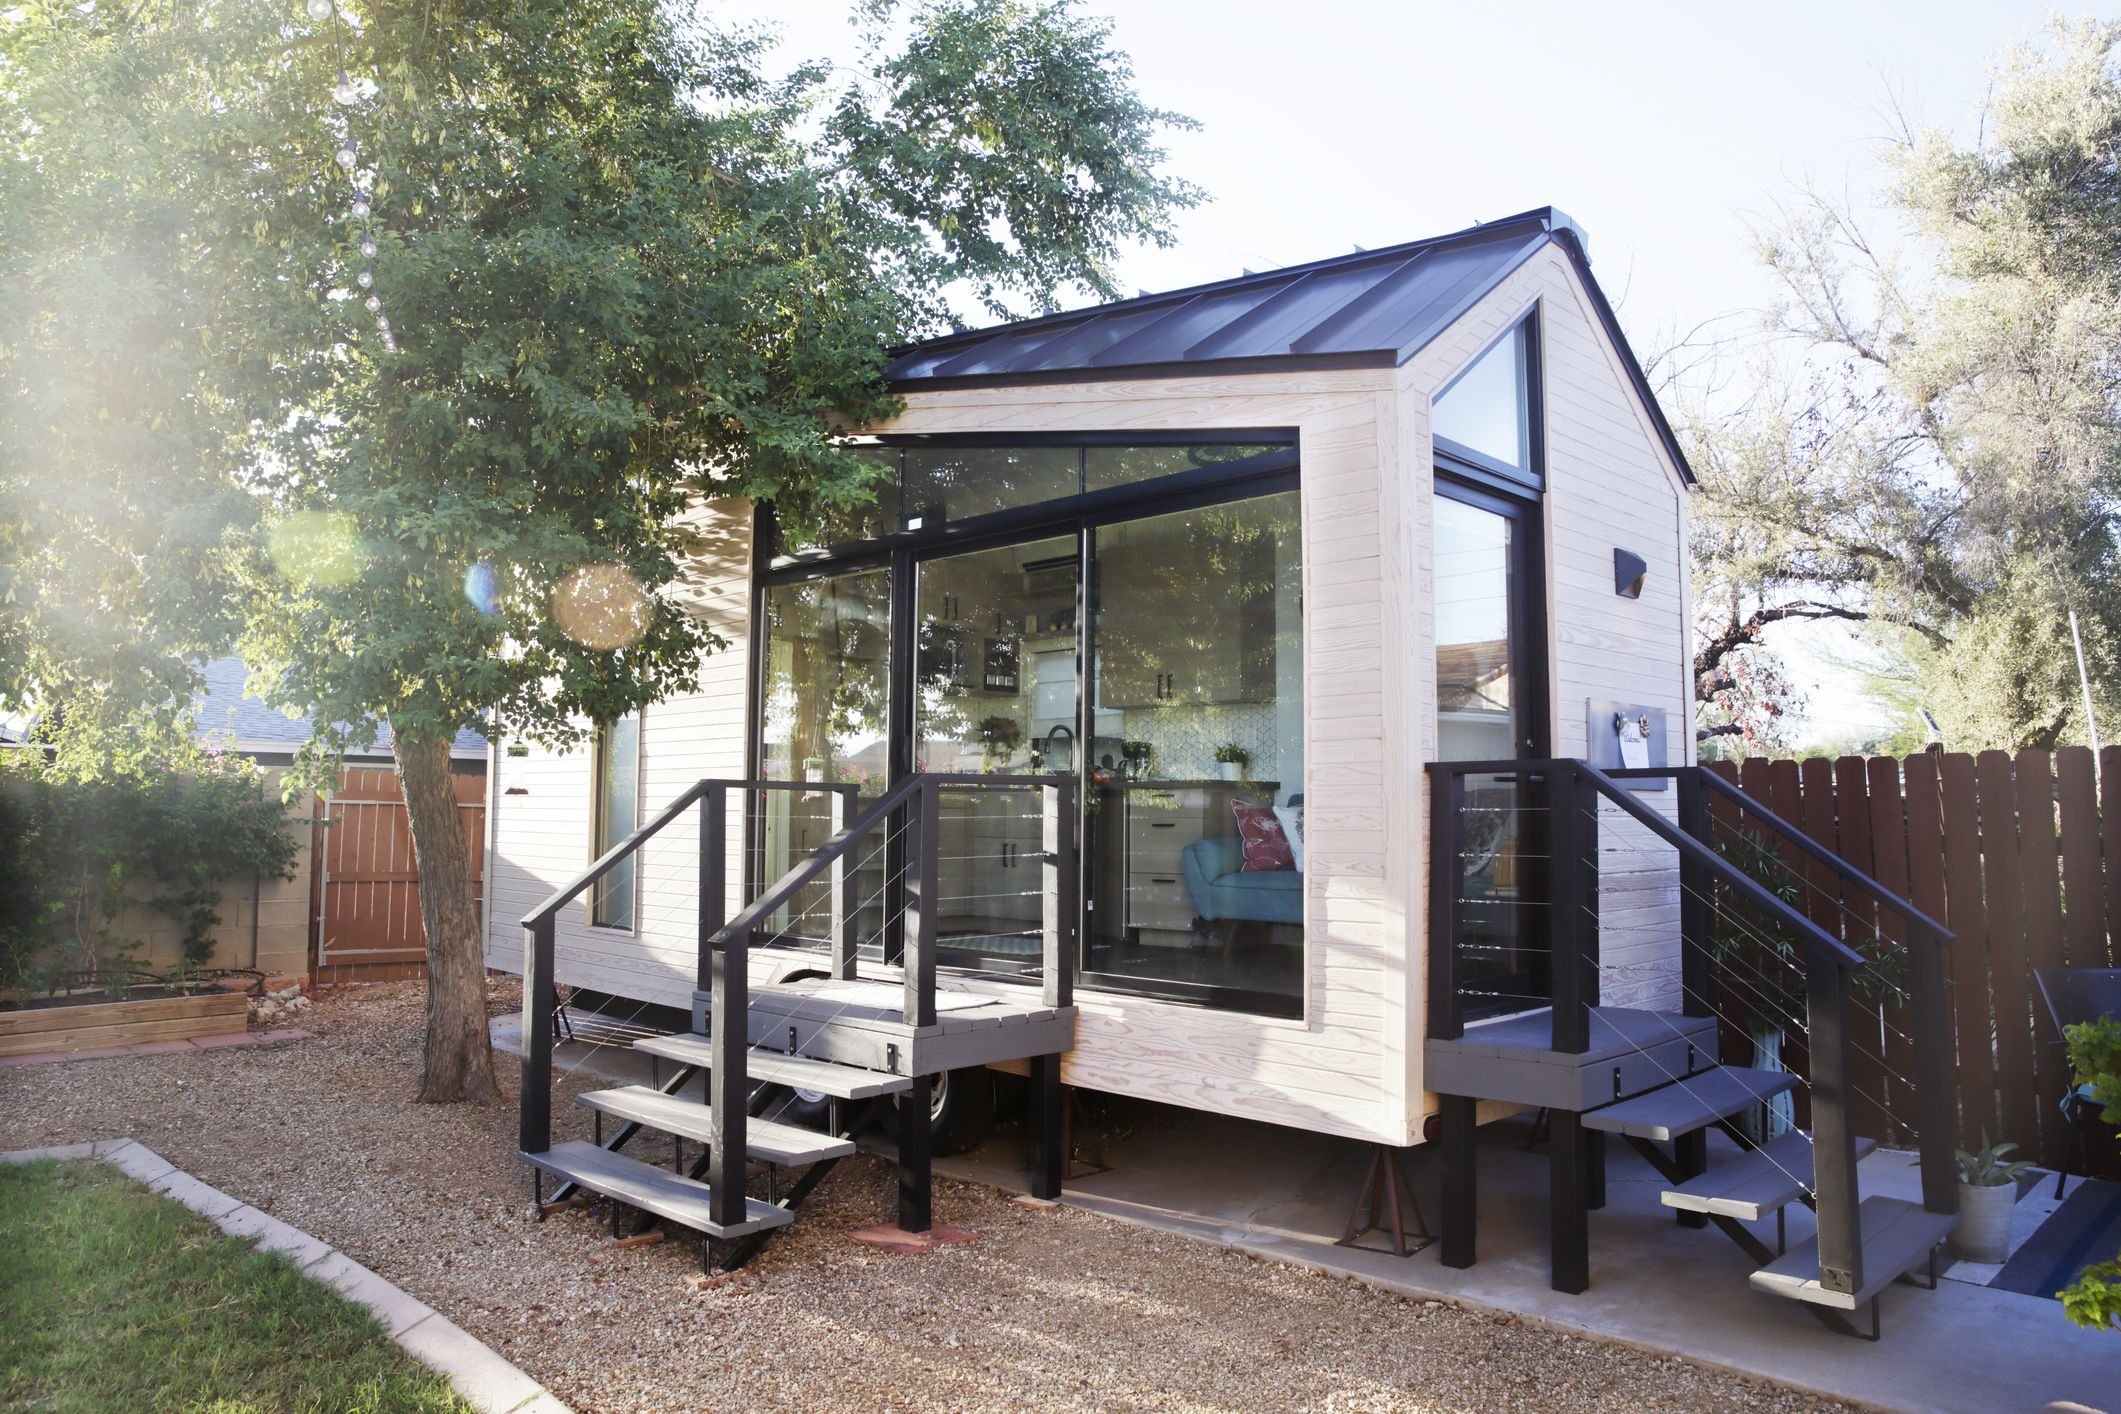 84 tiny houses that will convince you to downsize